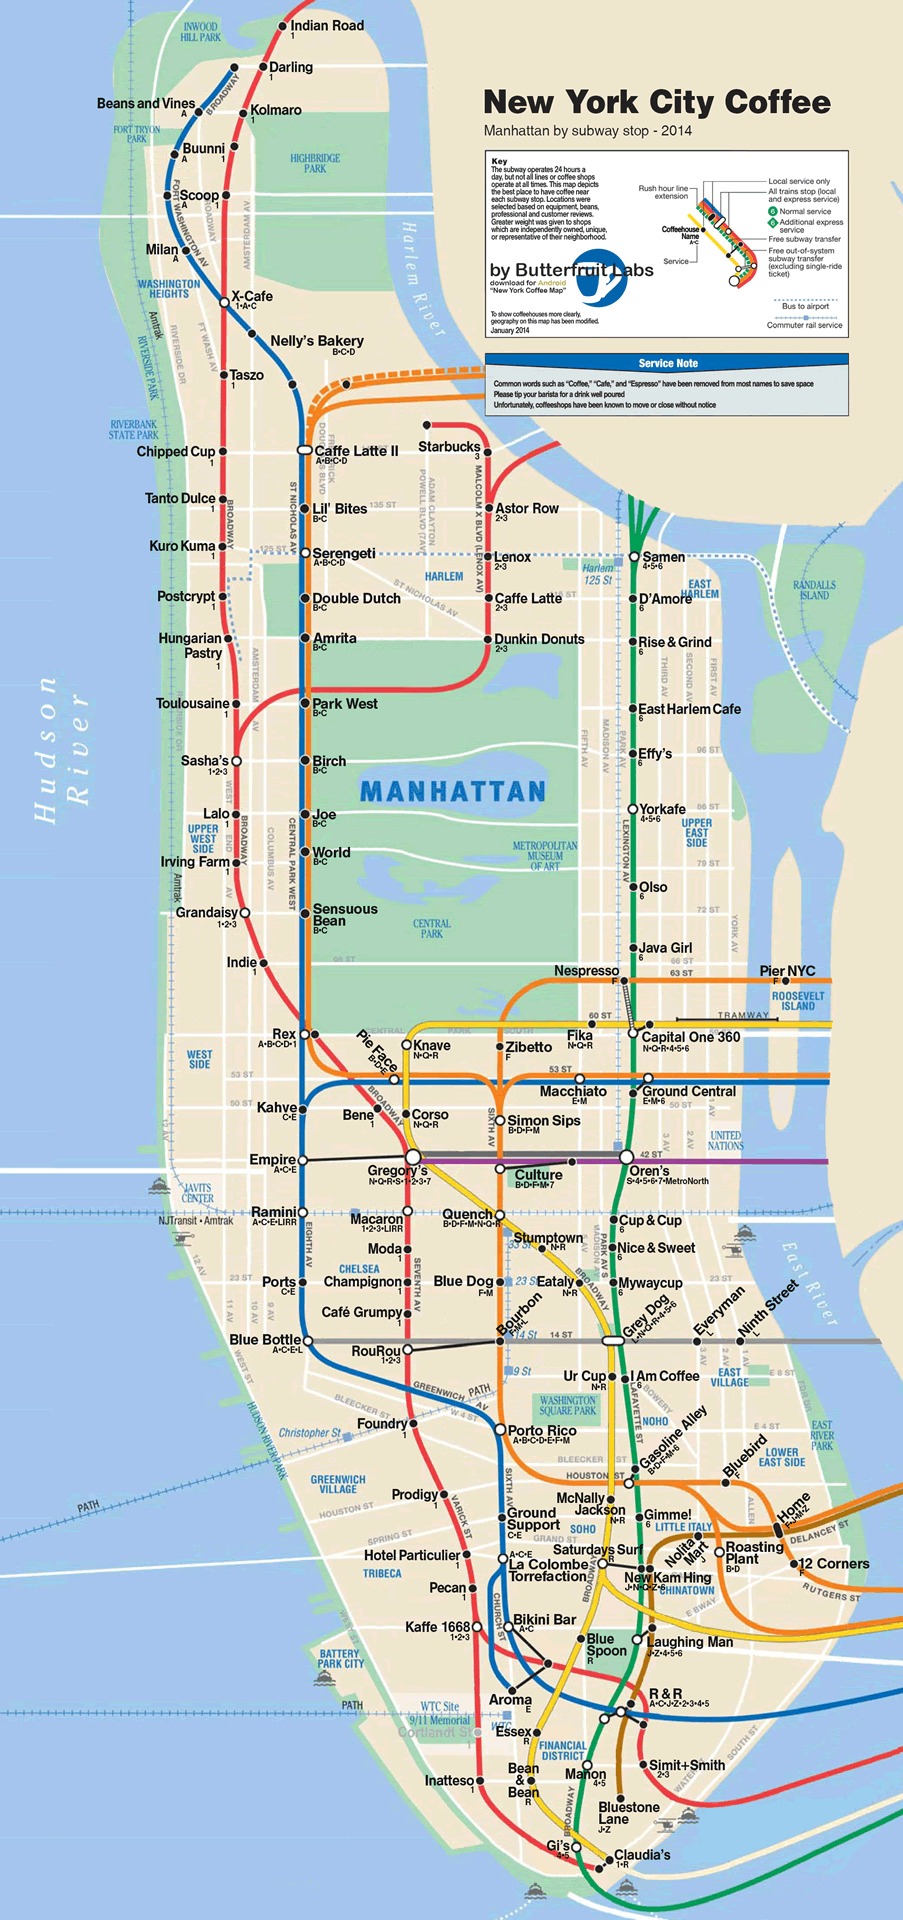 Large Ny Subway Map.New York City Manhattan Subway Map Large Image Viewer Askfoxes Com